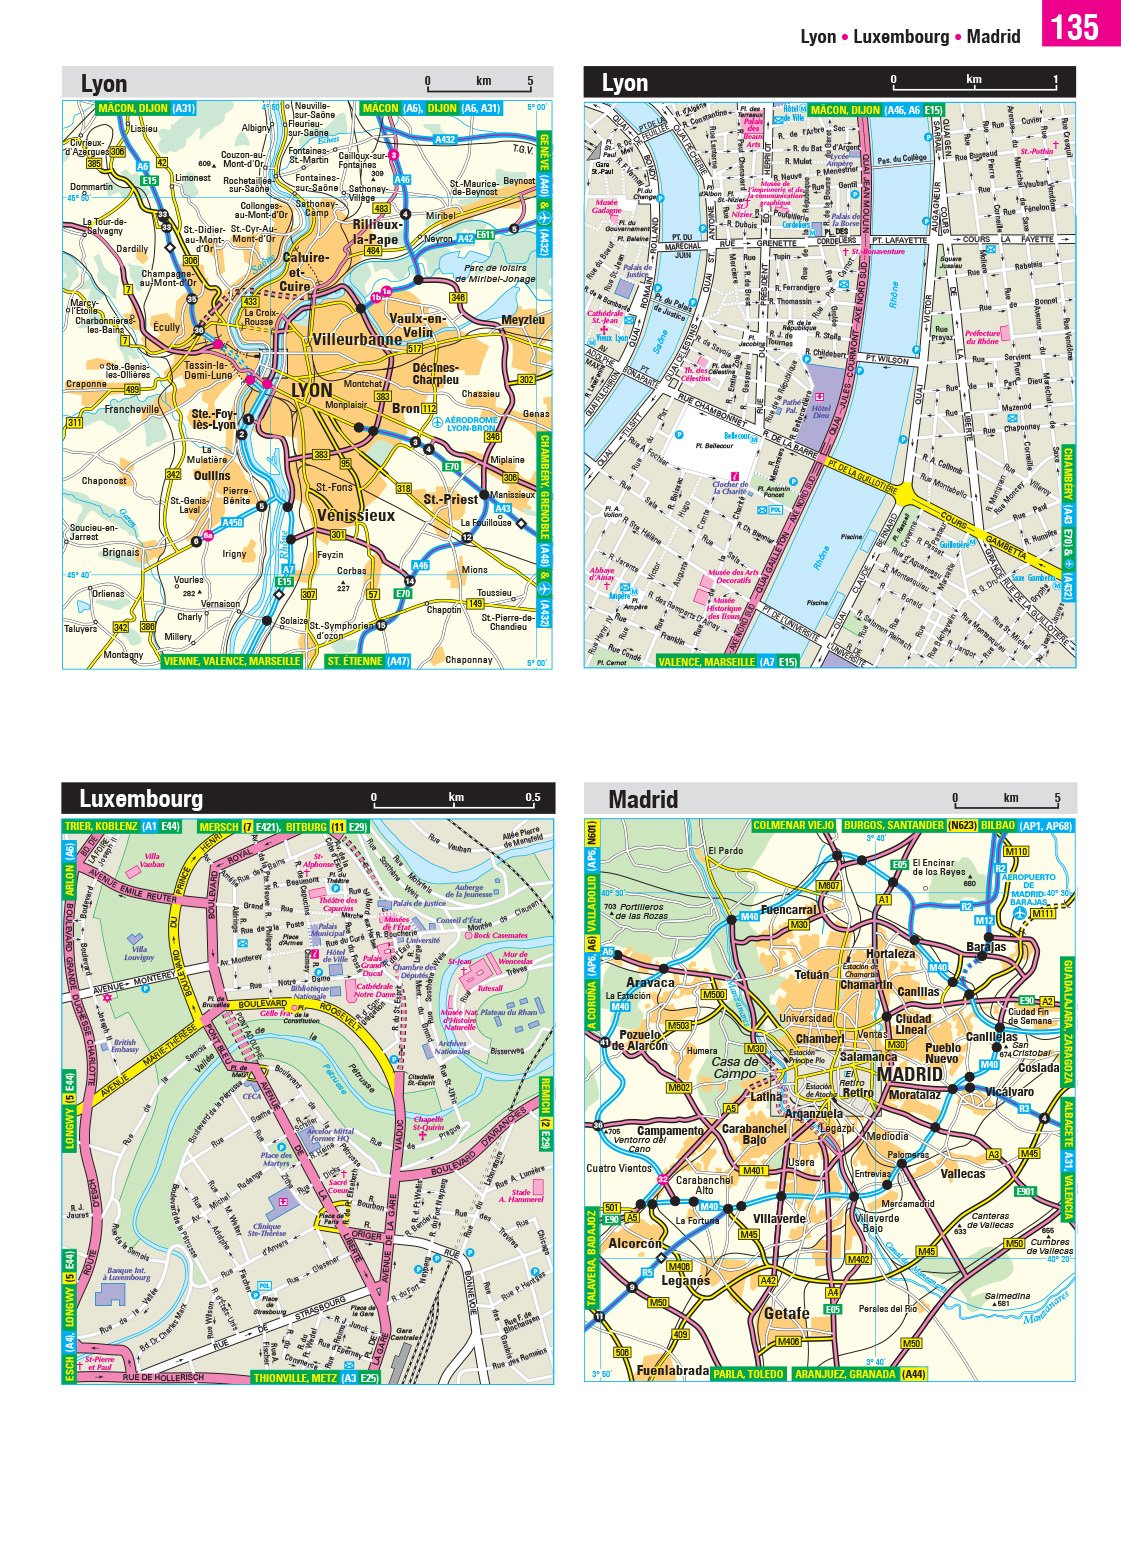 2020 Philip's Big Road Atlas Europe: (A3 Spiral binding) (Philip's Road Atlases) 2